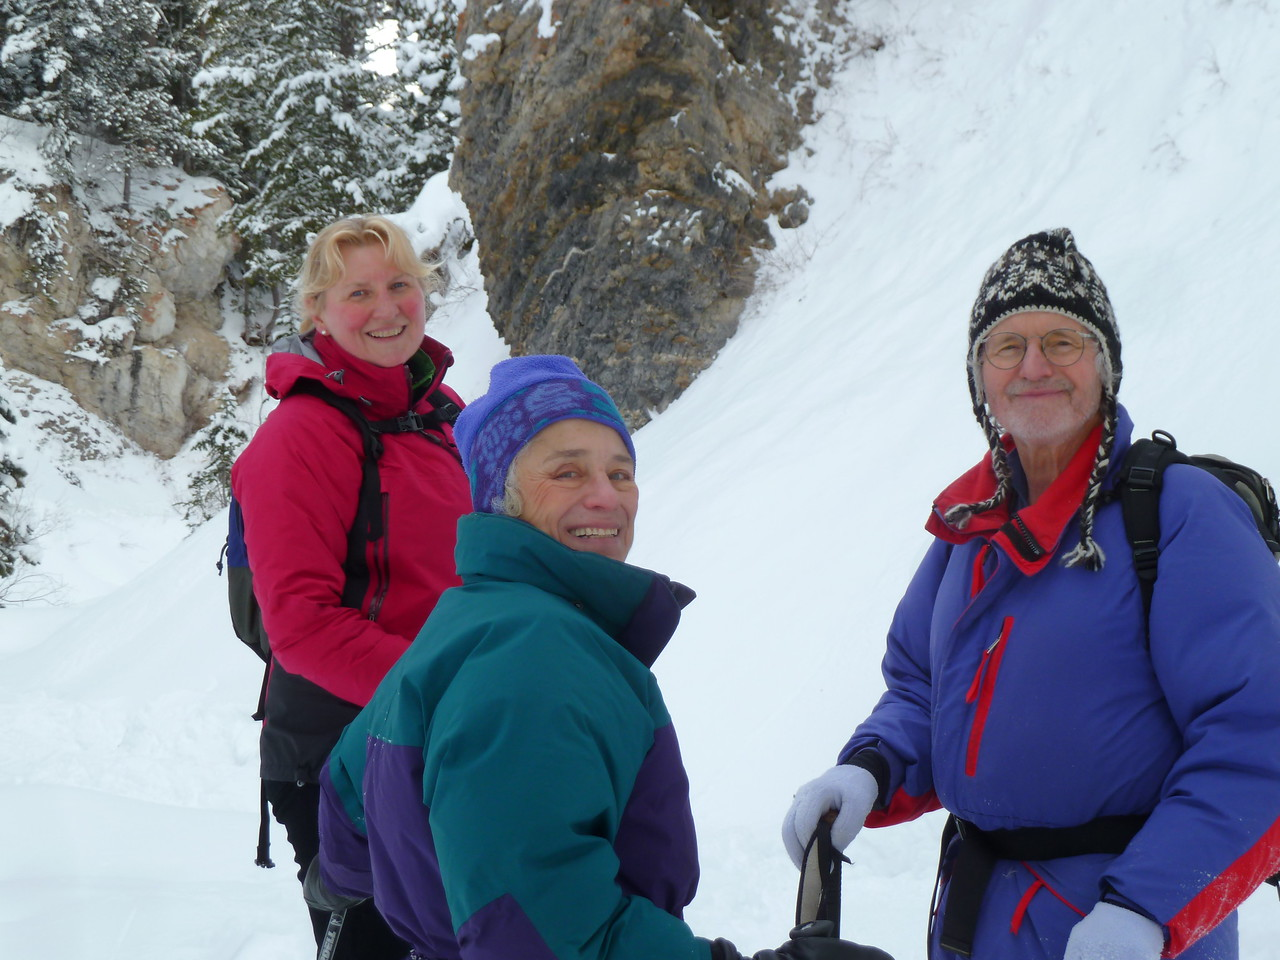 Snowshoeing with Claire and Peter after a major snowfall on Boxing Day.